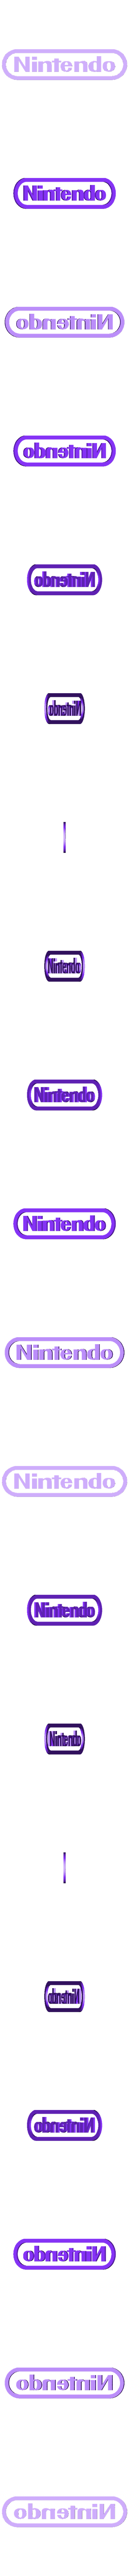 logo.stl Download free STL file Nintendo Switch (Plate) for MMU or Dual Extruder • 3D printer object, mkoistinen